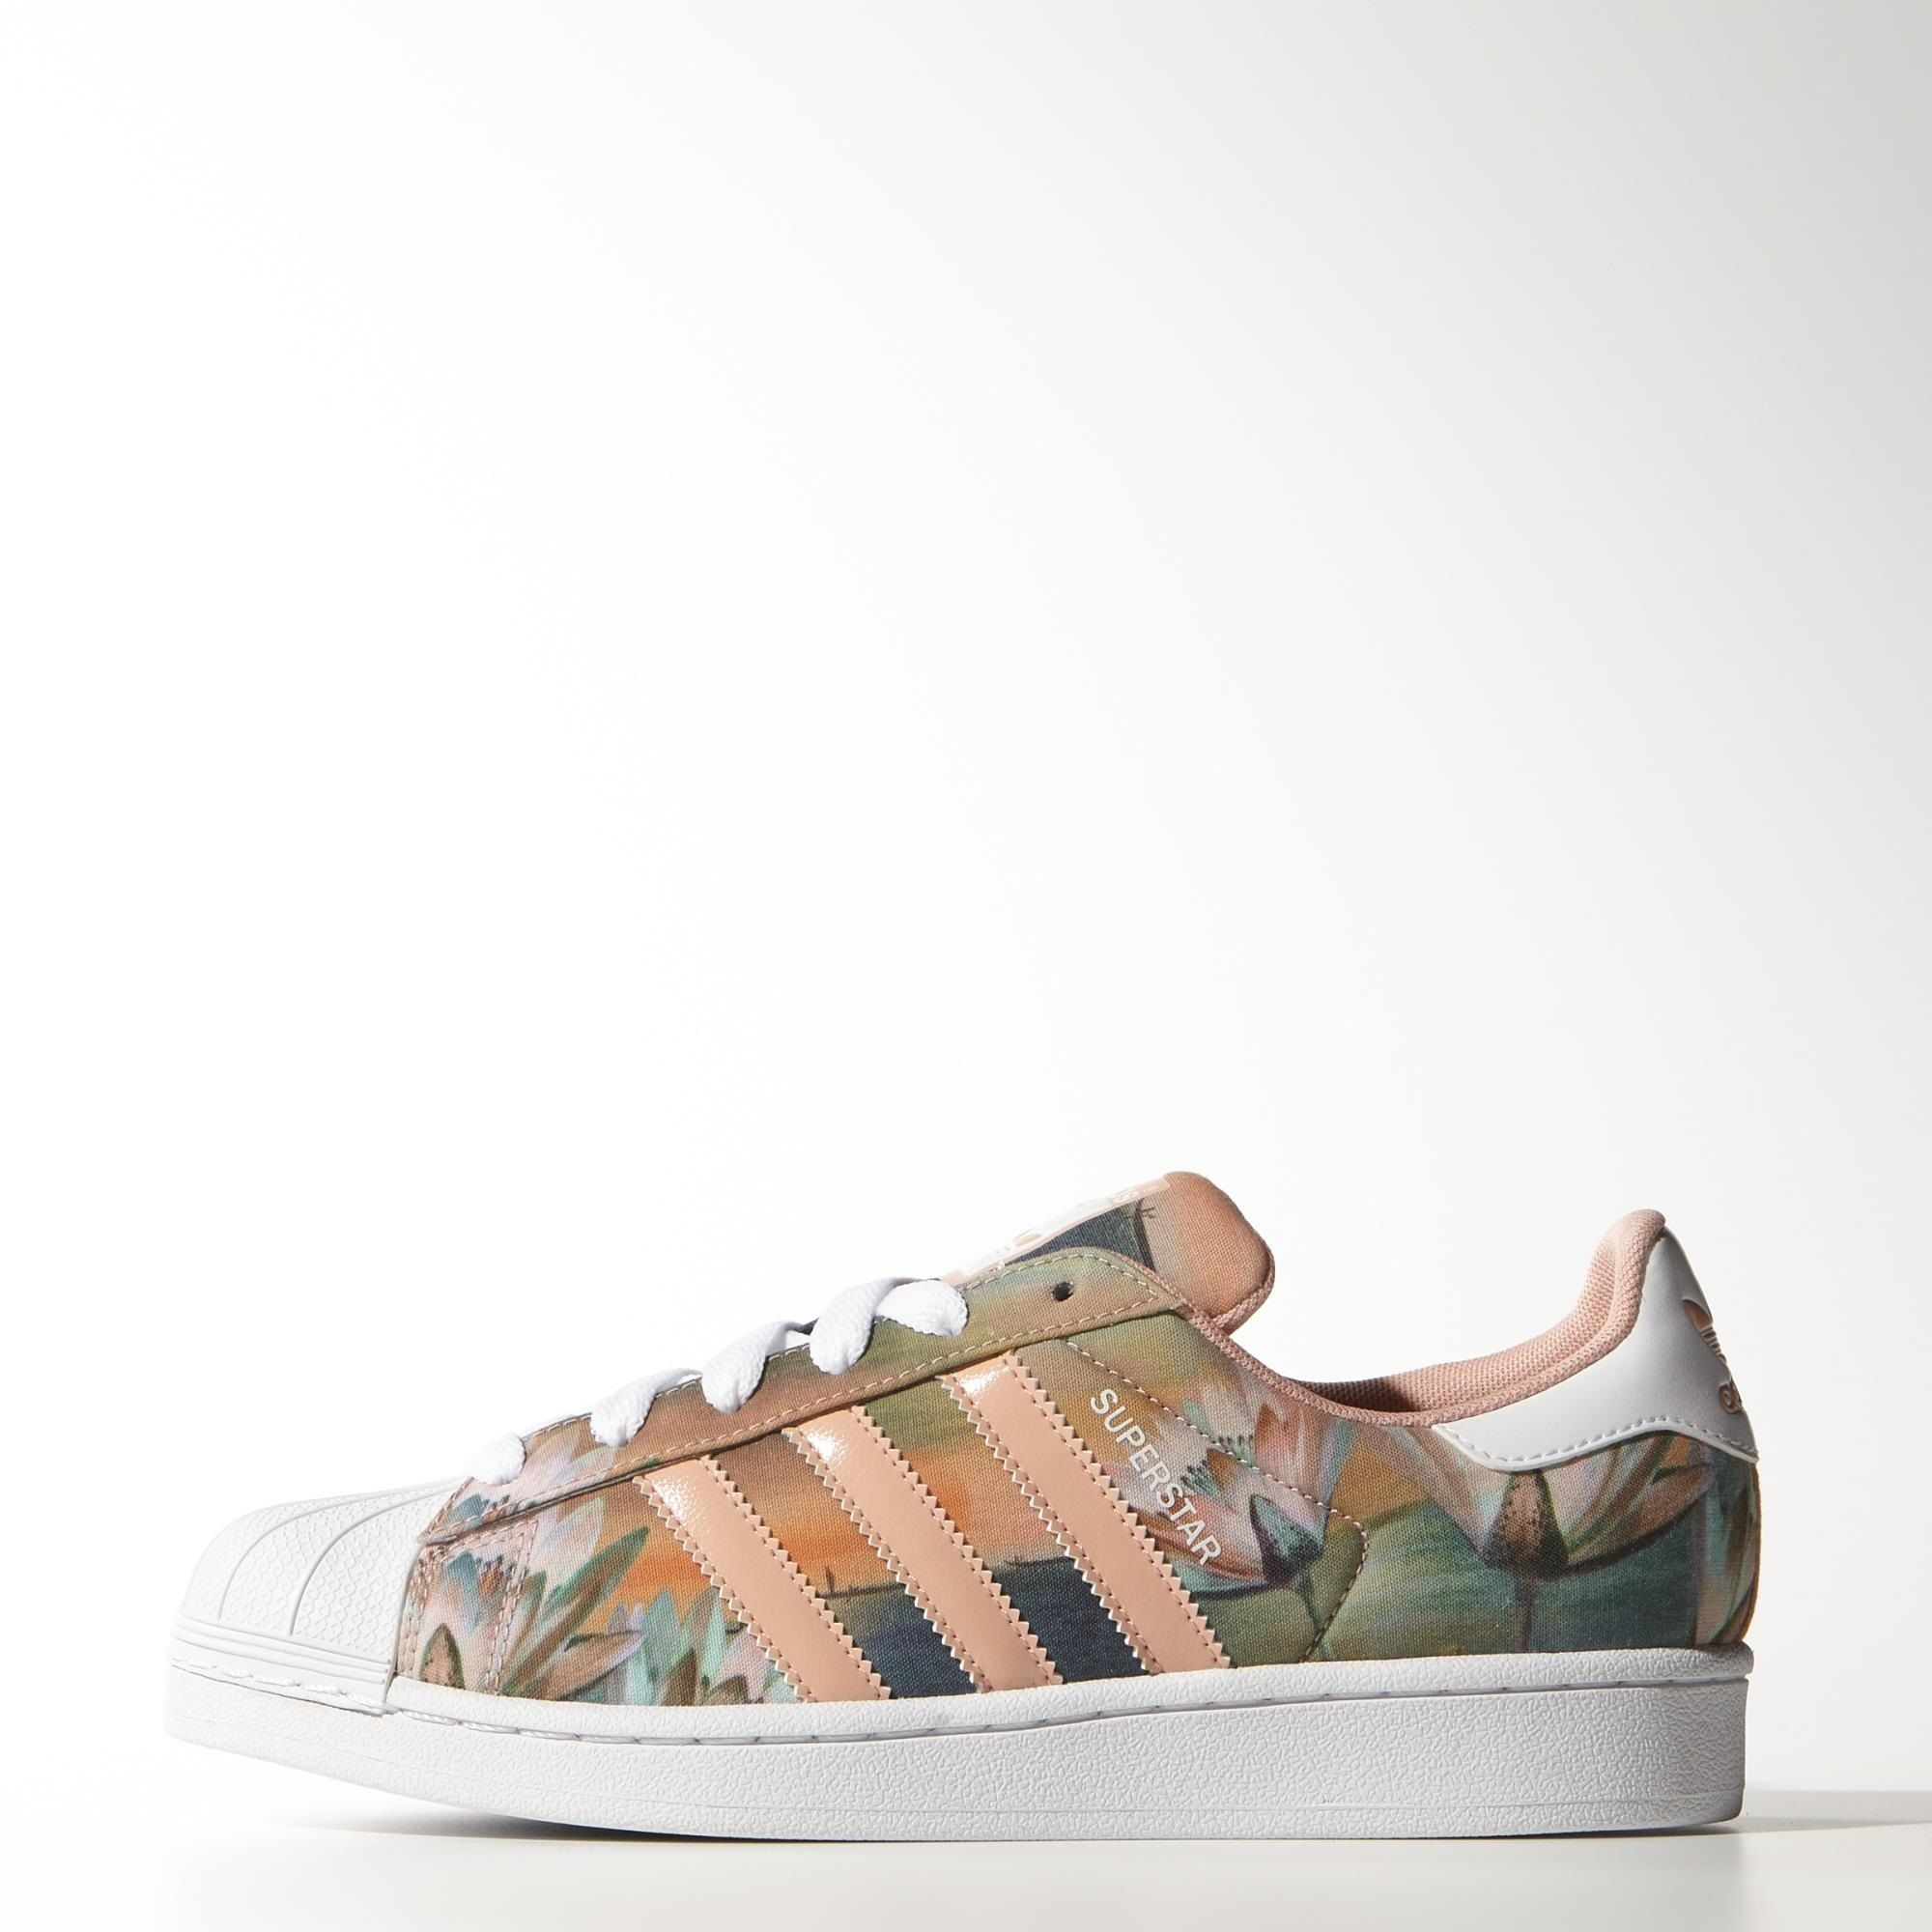 adidas superstar the farm